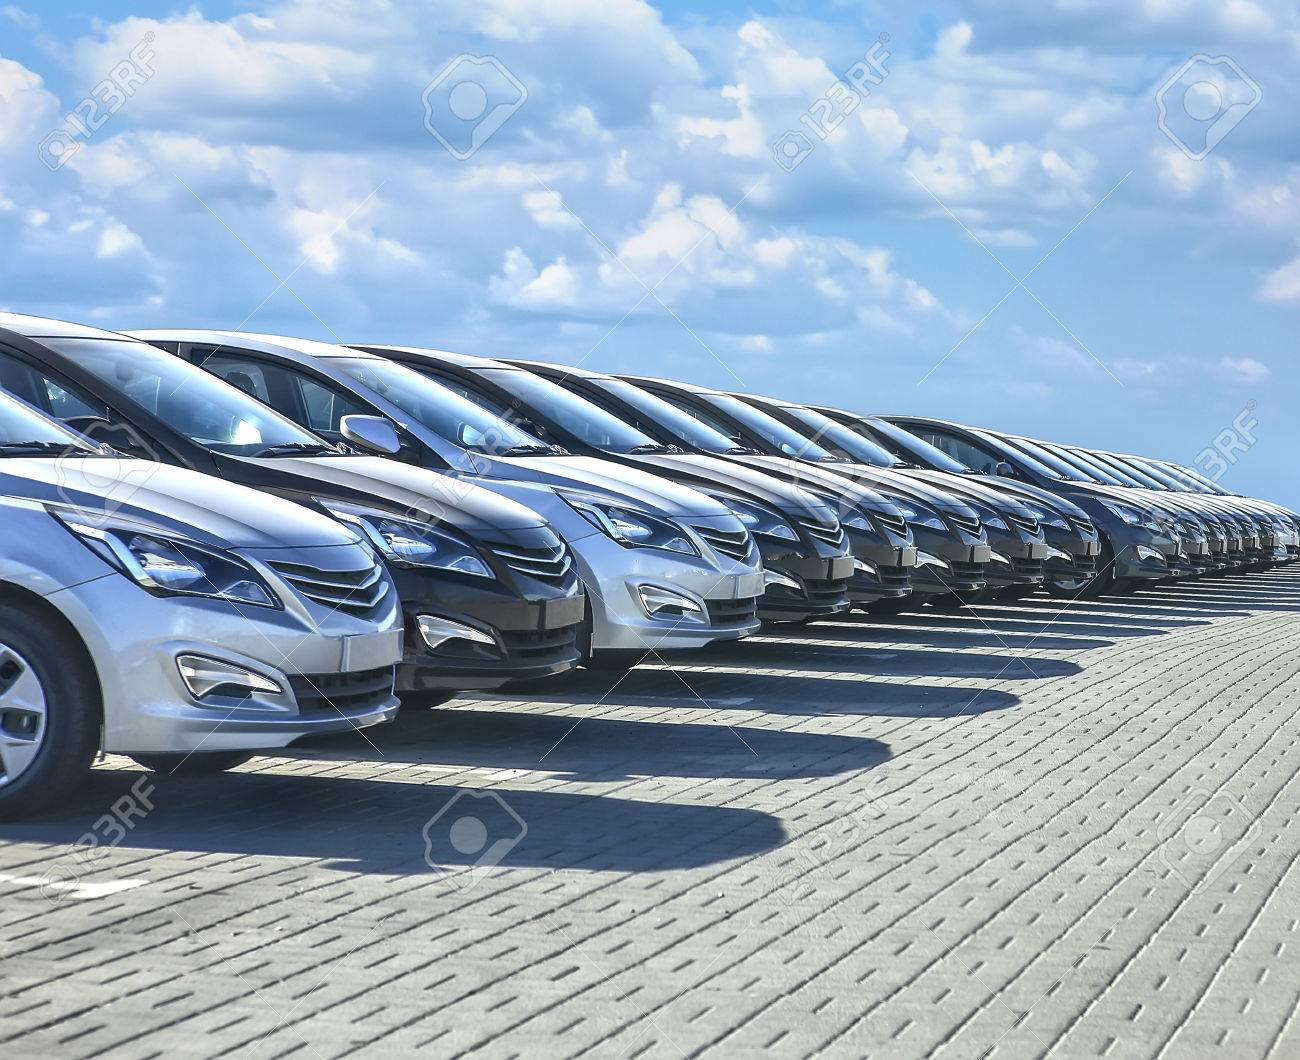 Cars For Sale Stock Lot Row. Car Dealer Inventory - 73560723